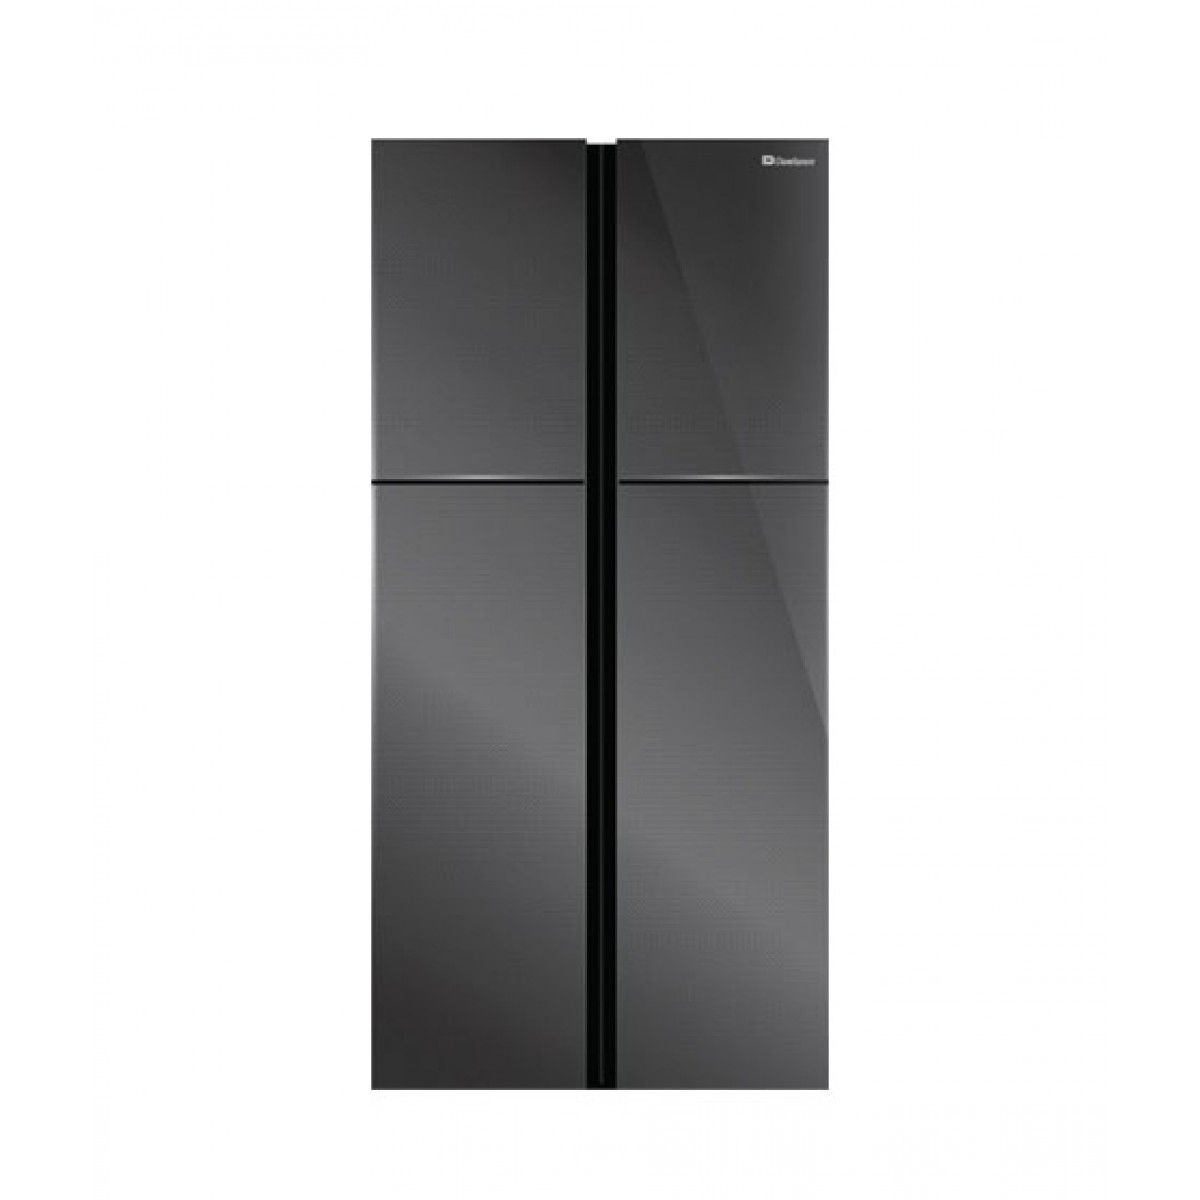 Dawlance DFD-900 Double French Door 24 cu ft  Refrigerator